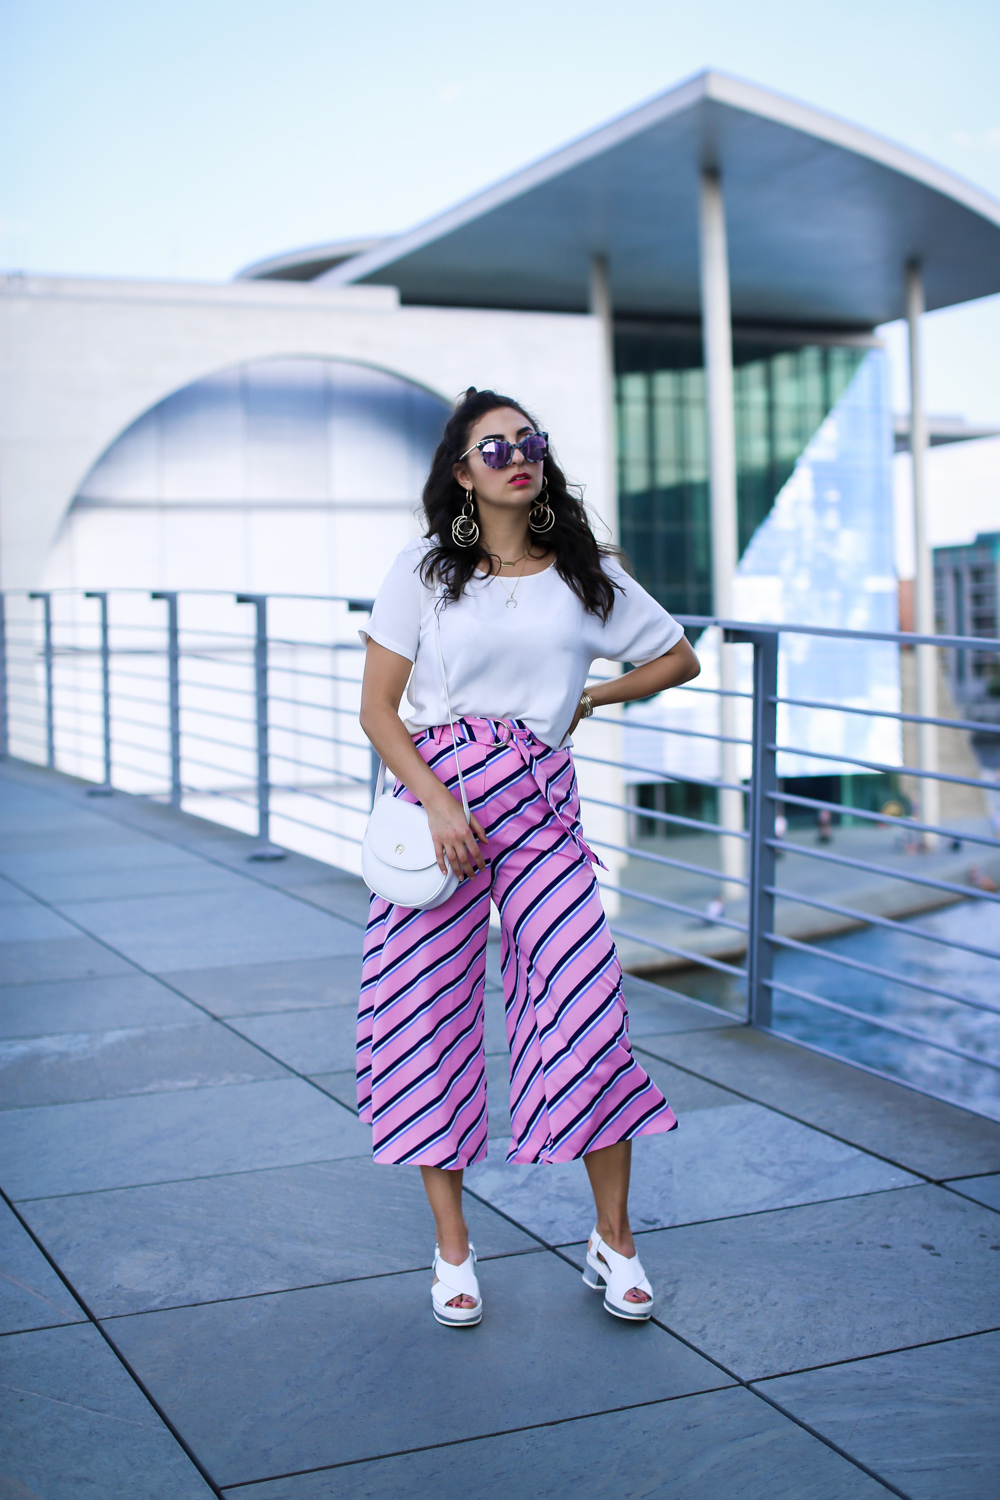 bershka pink culotte white plateau sandals retro style vintage aigner bag summer look streetstyle fashion modeblog berlin blog samieze